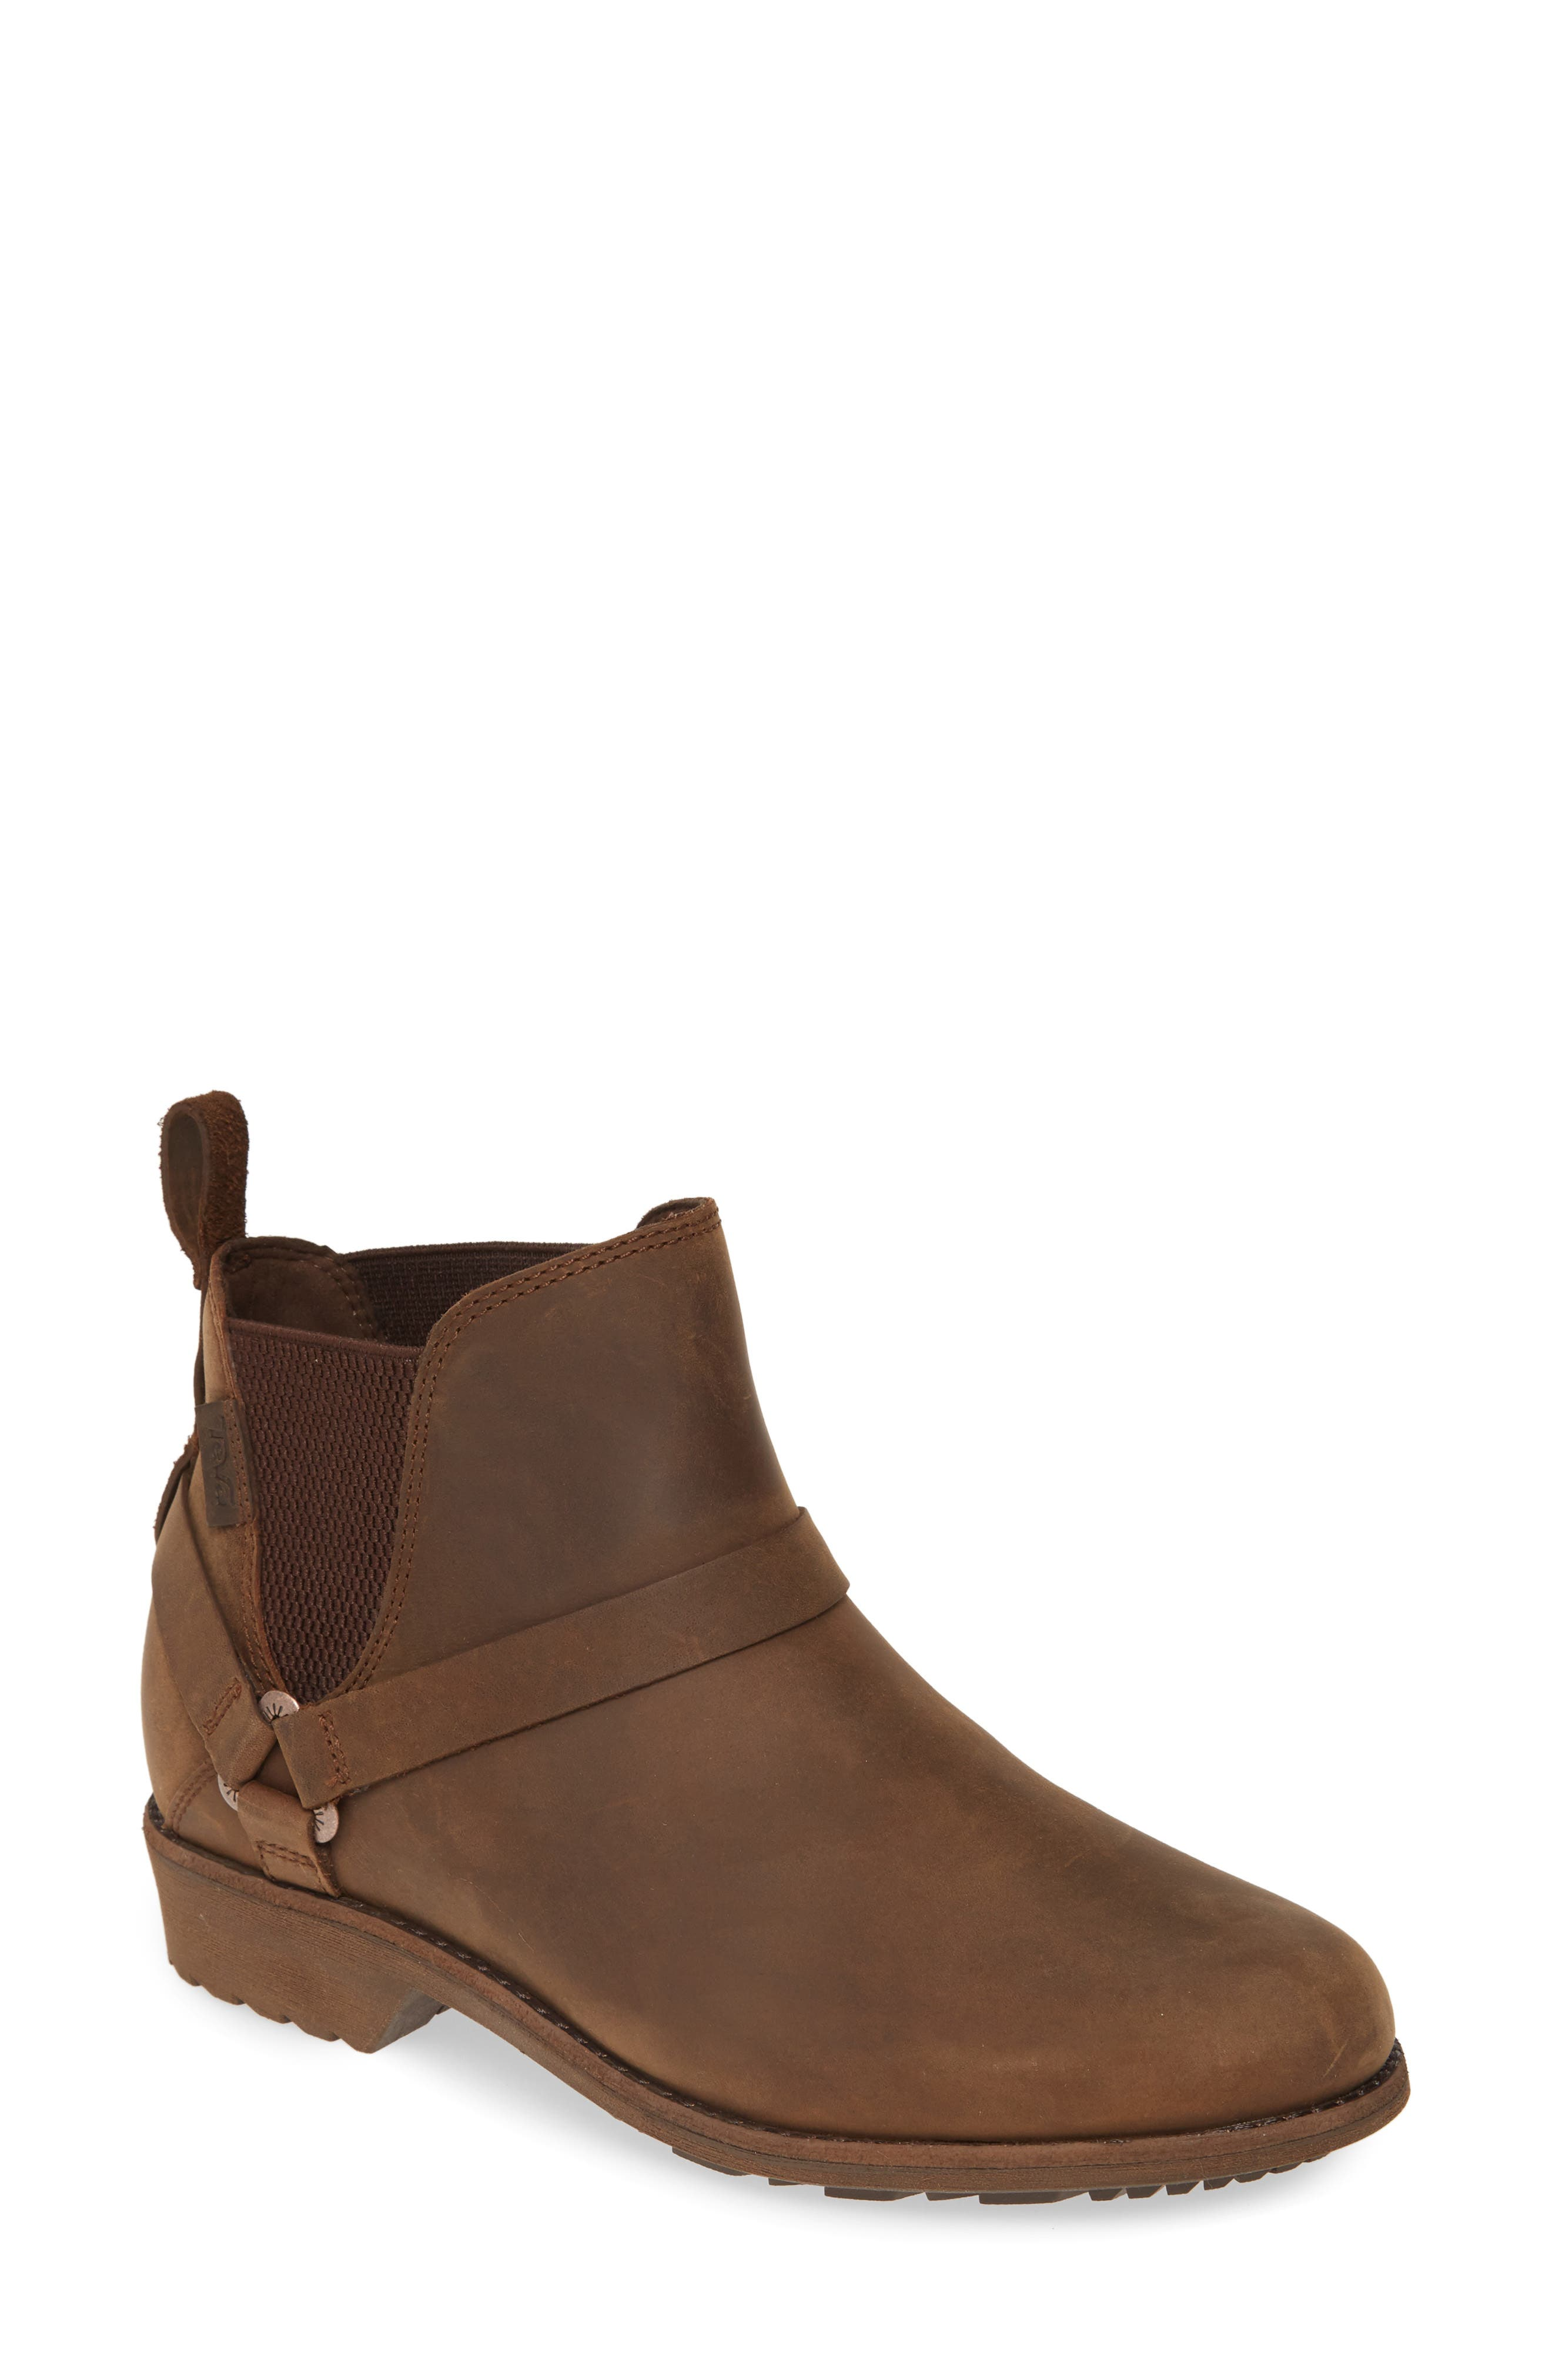 Image of Teva Ellery Chelsea Boot